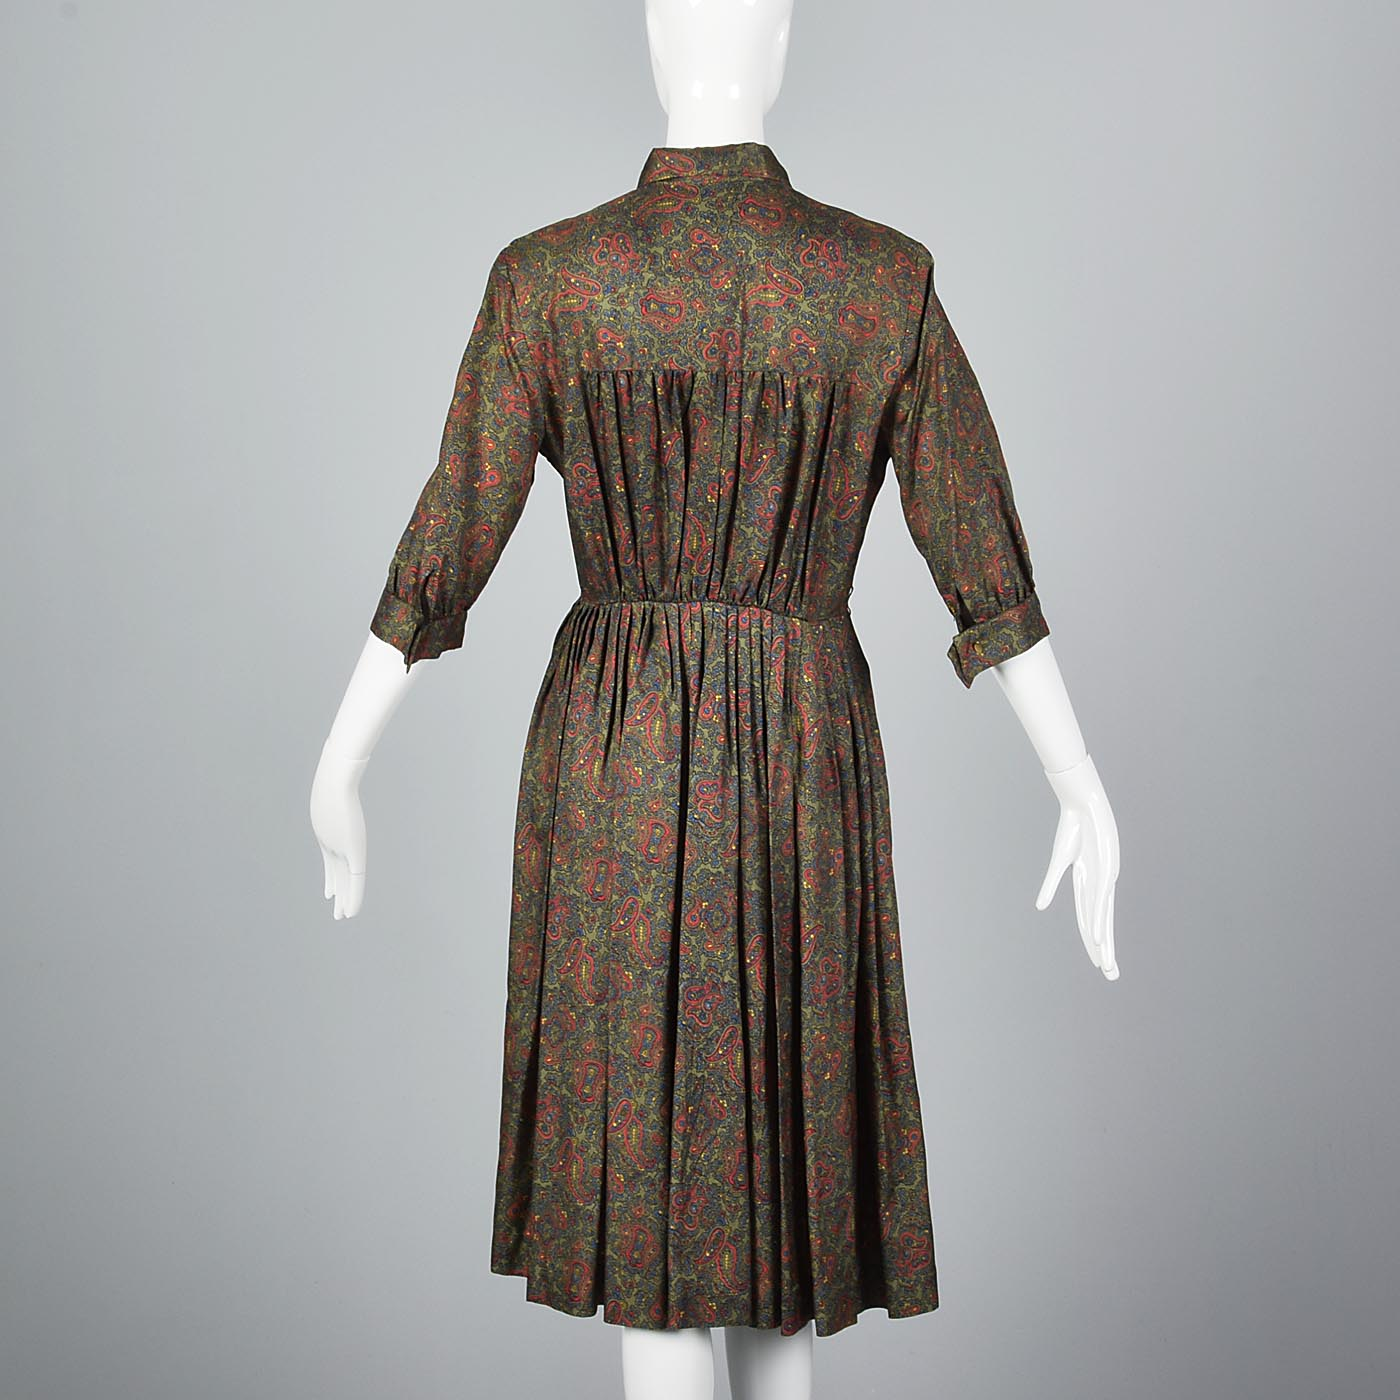 1950s Paisley Print Shirtwaist Dress